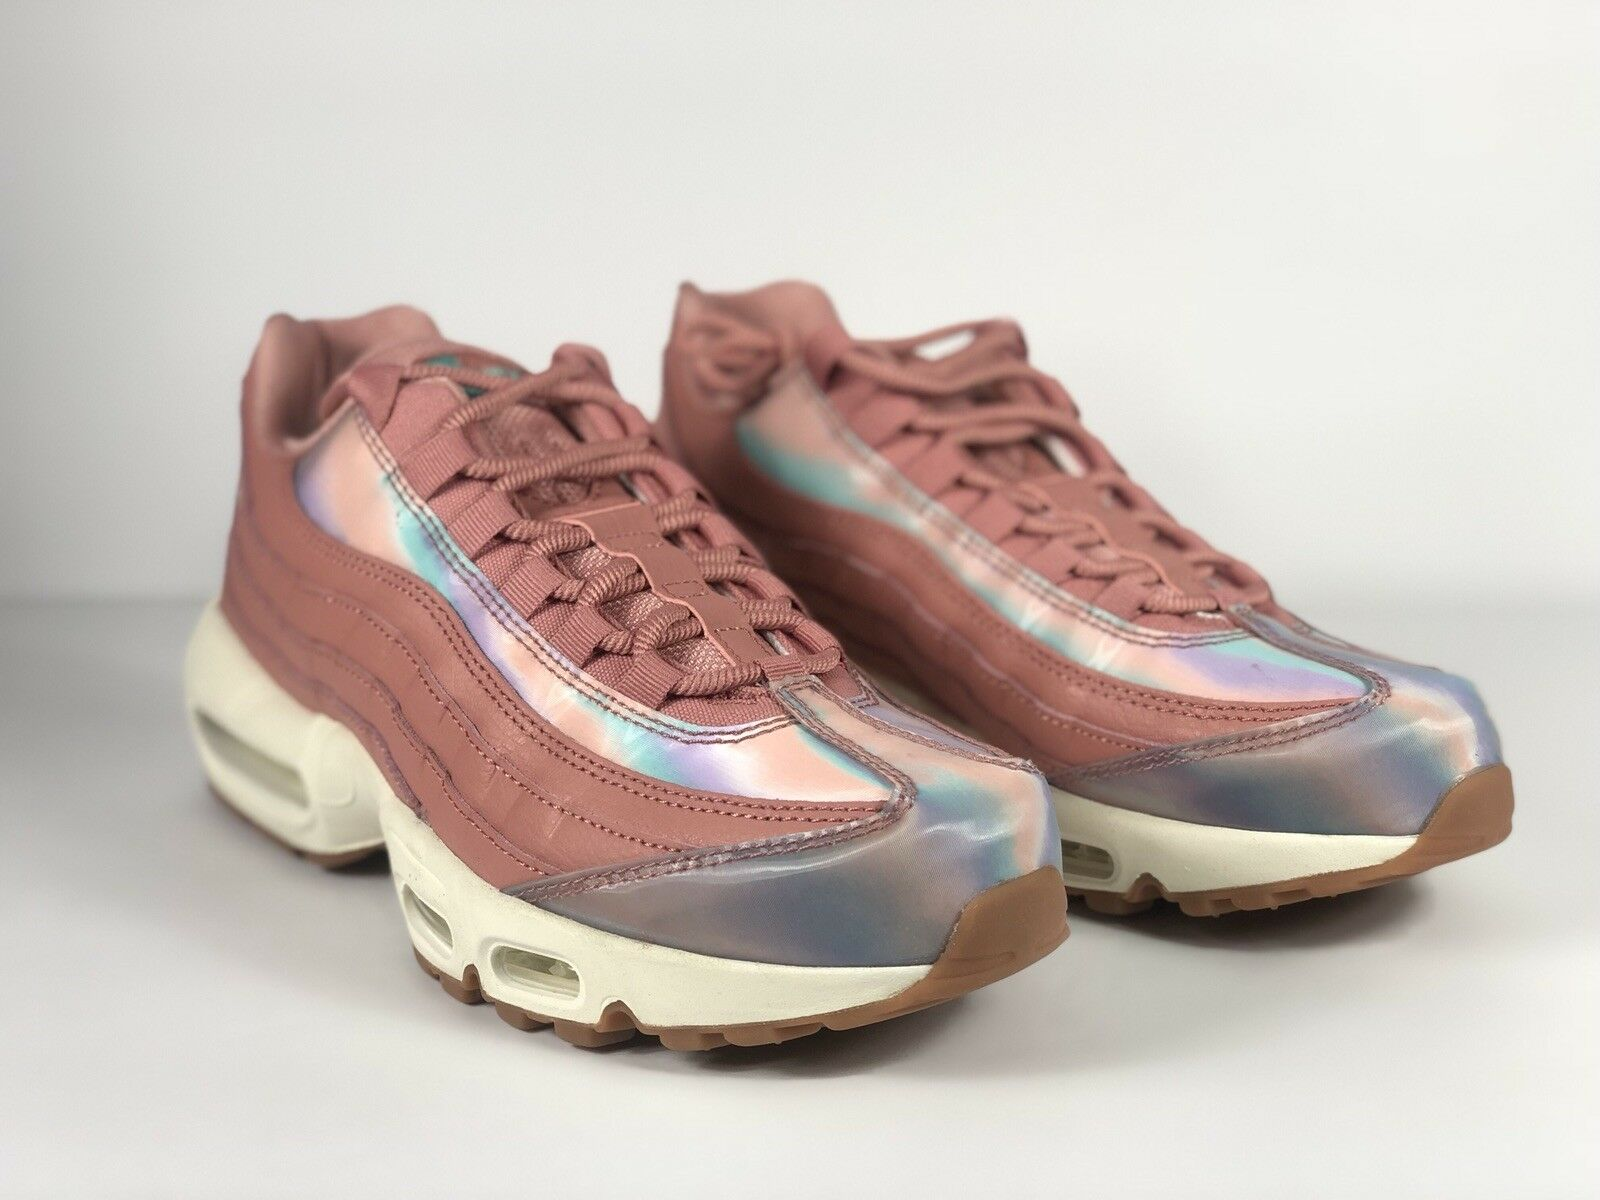 Nike Air Max 95 SE Red Stardust 918413-600 Womens Size 10 Men's 8.5